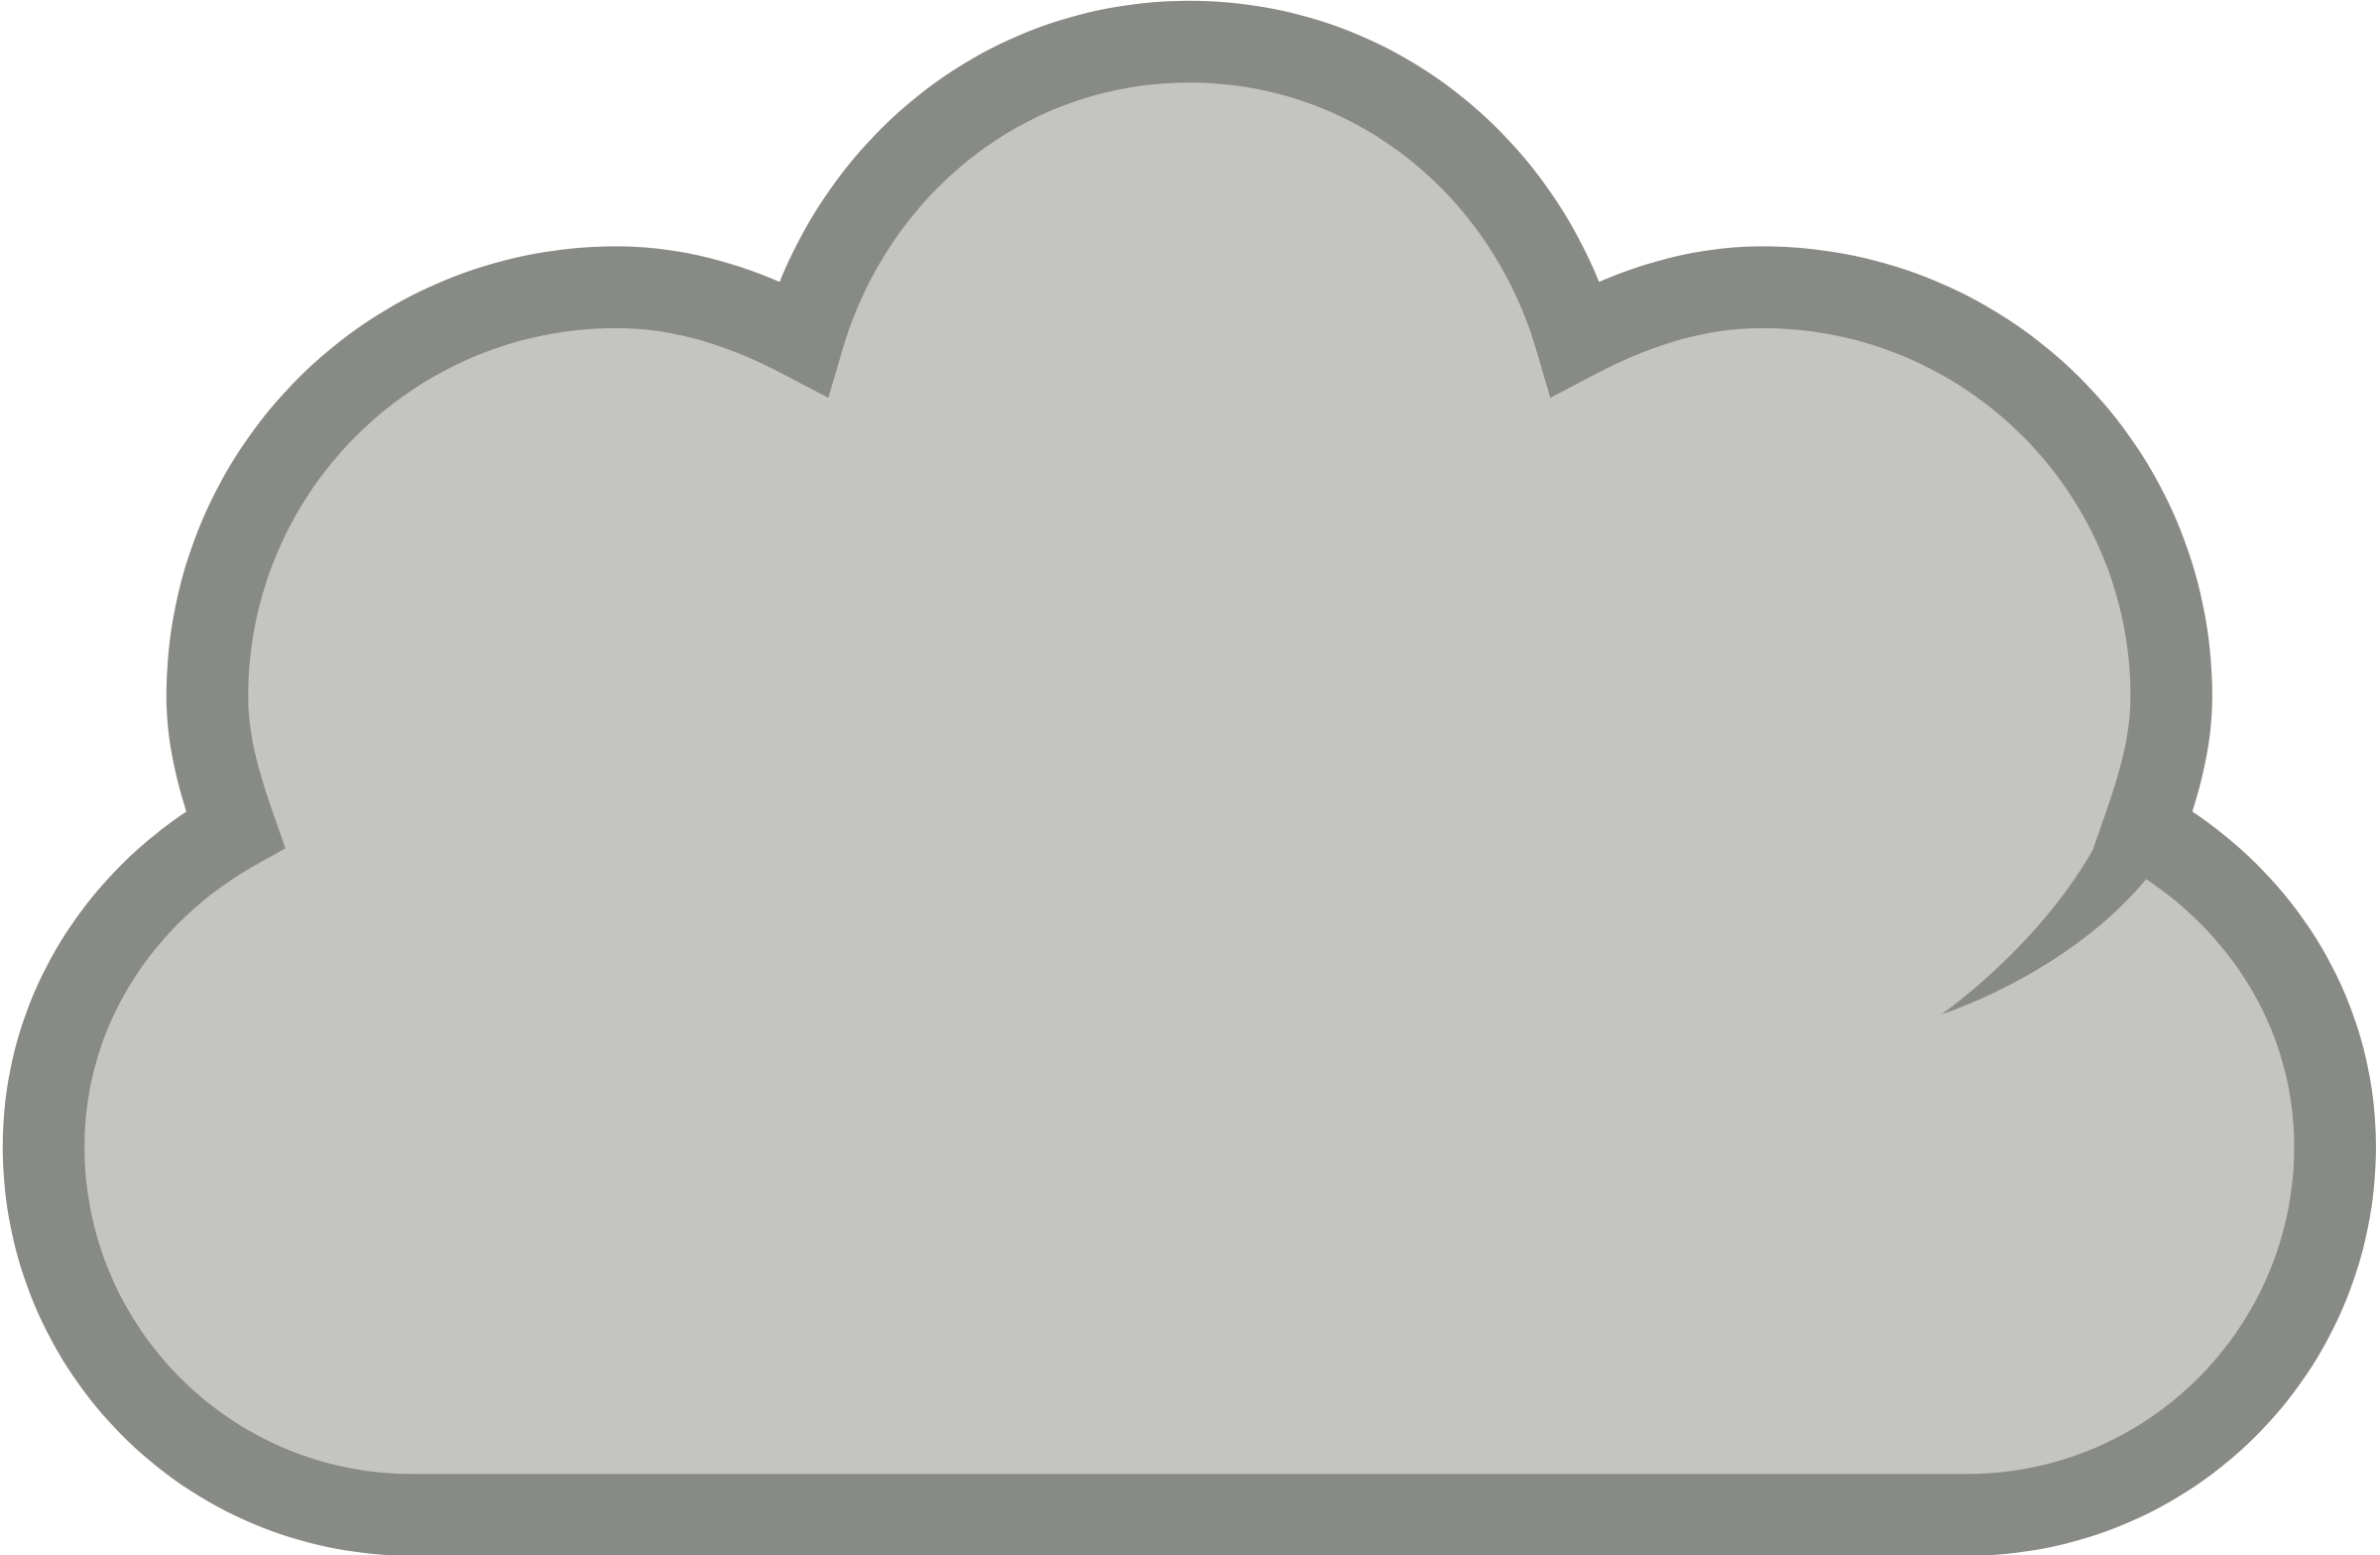 Rain Cloud Clip Art-Rain Cloud Clip Art-15